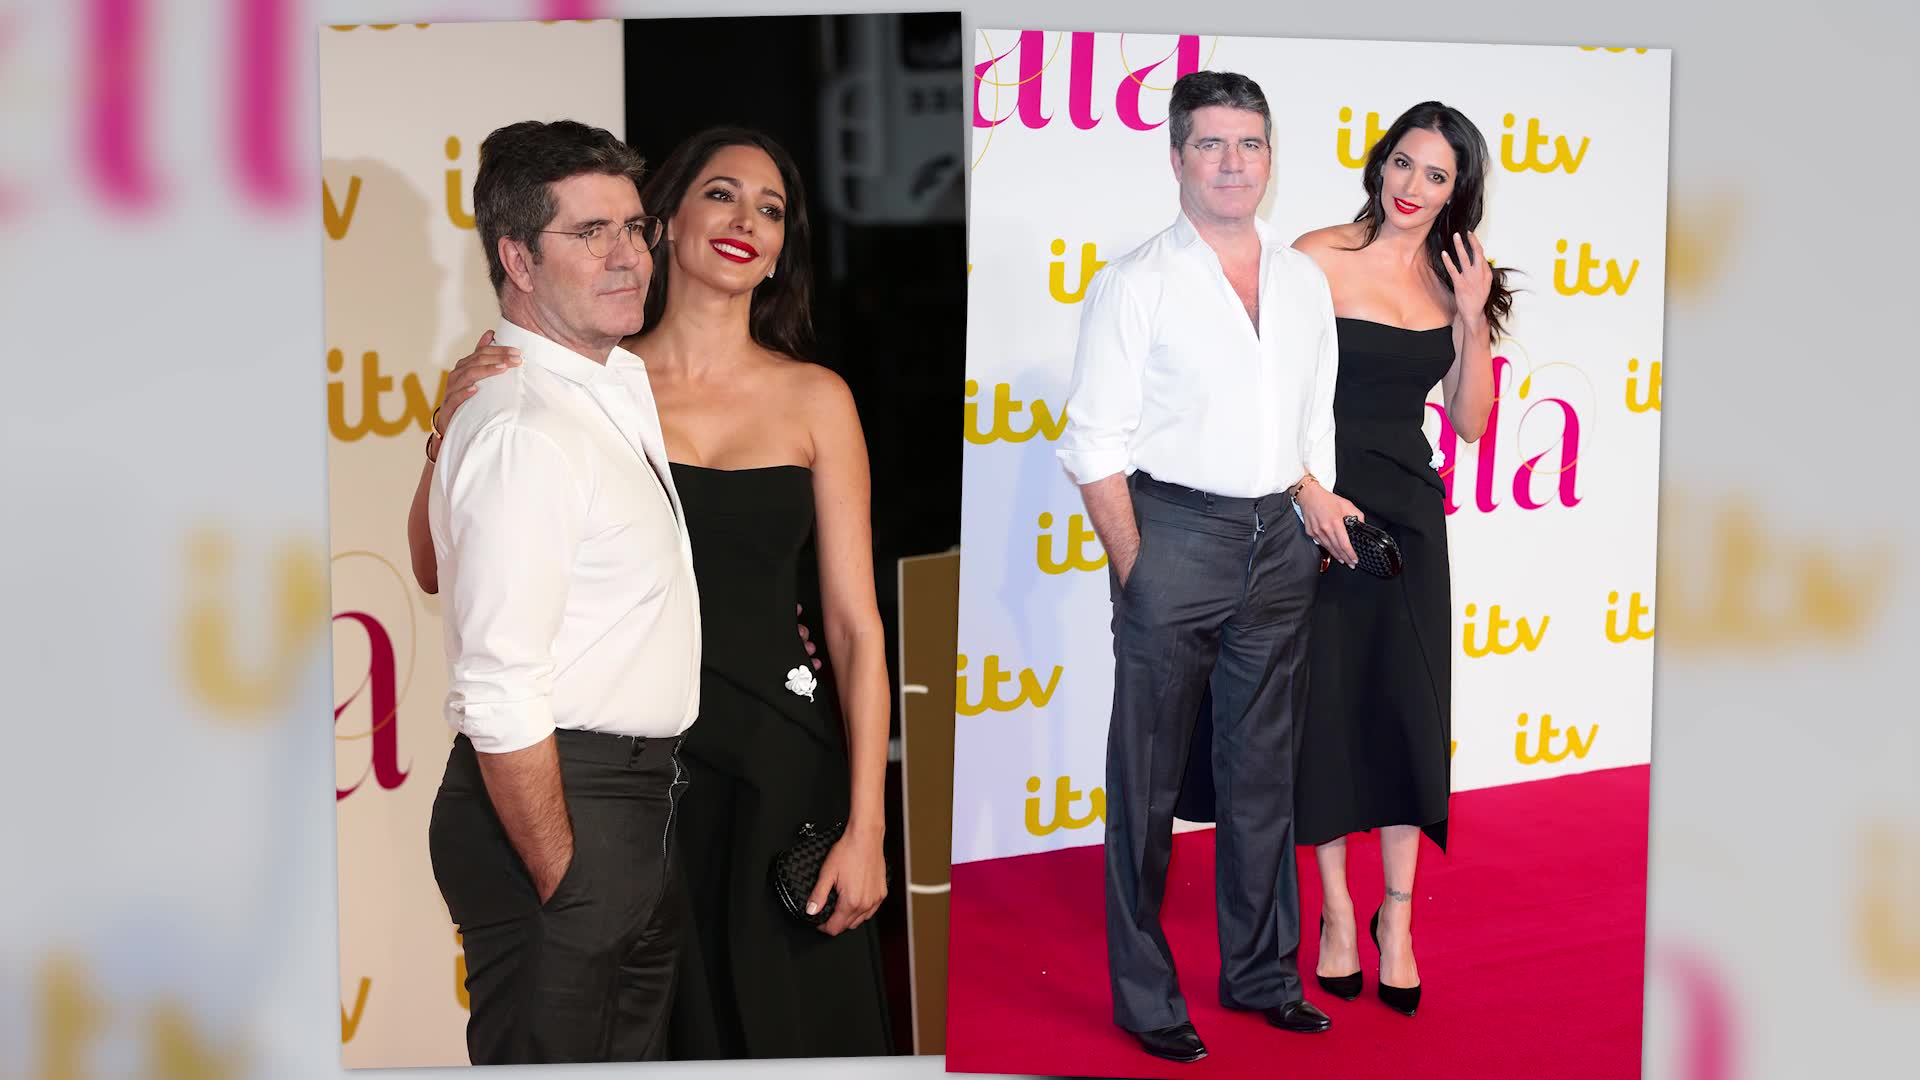 Simon Cowell And Celebrities At ITV's Gala